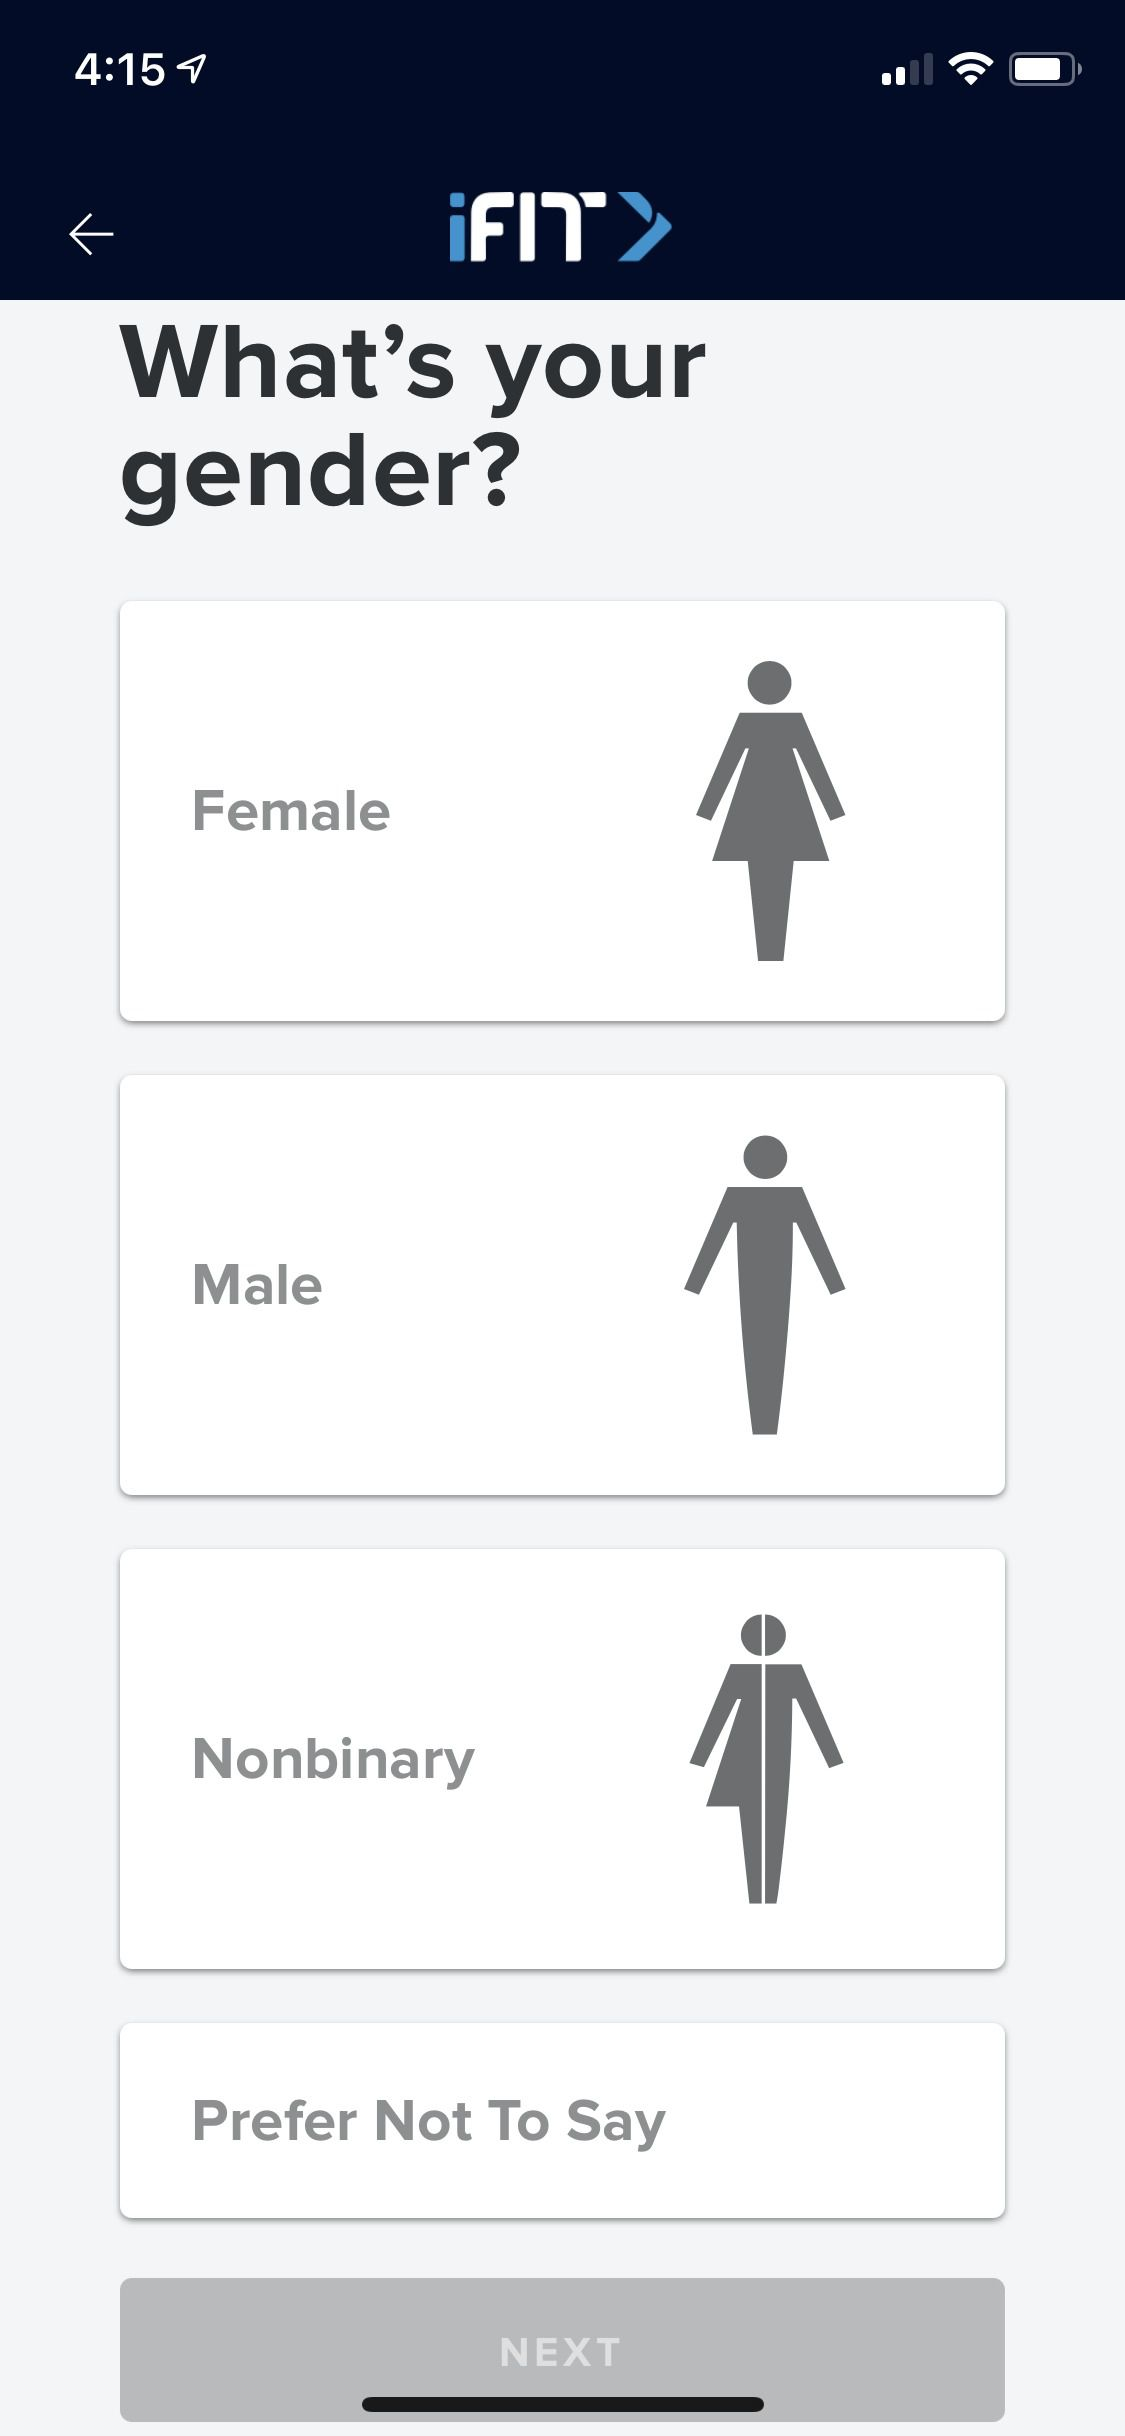 The question now asked is what is your gender and there is an option to decline a response.